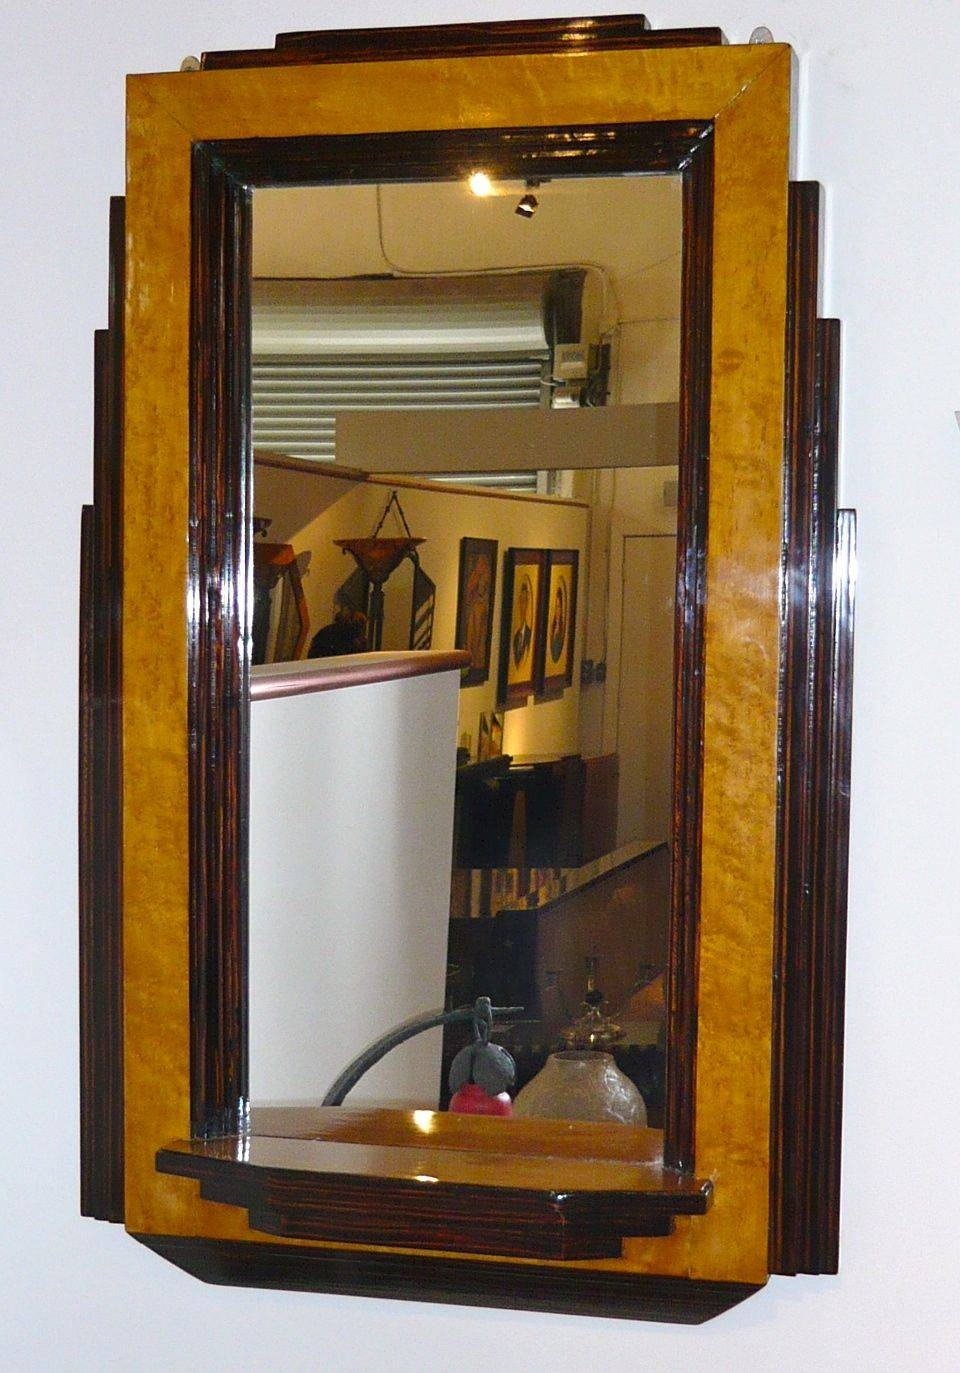 Art Deco Bedroom Furniture For Sale | Art Deco Collection for Art Deco Large Mirrors (Image 3 of 15)